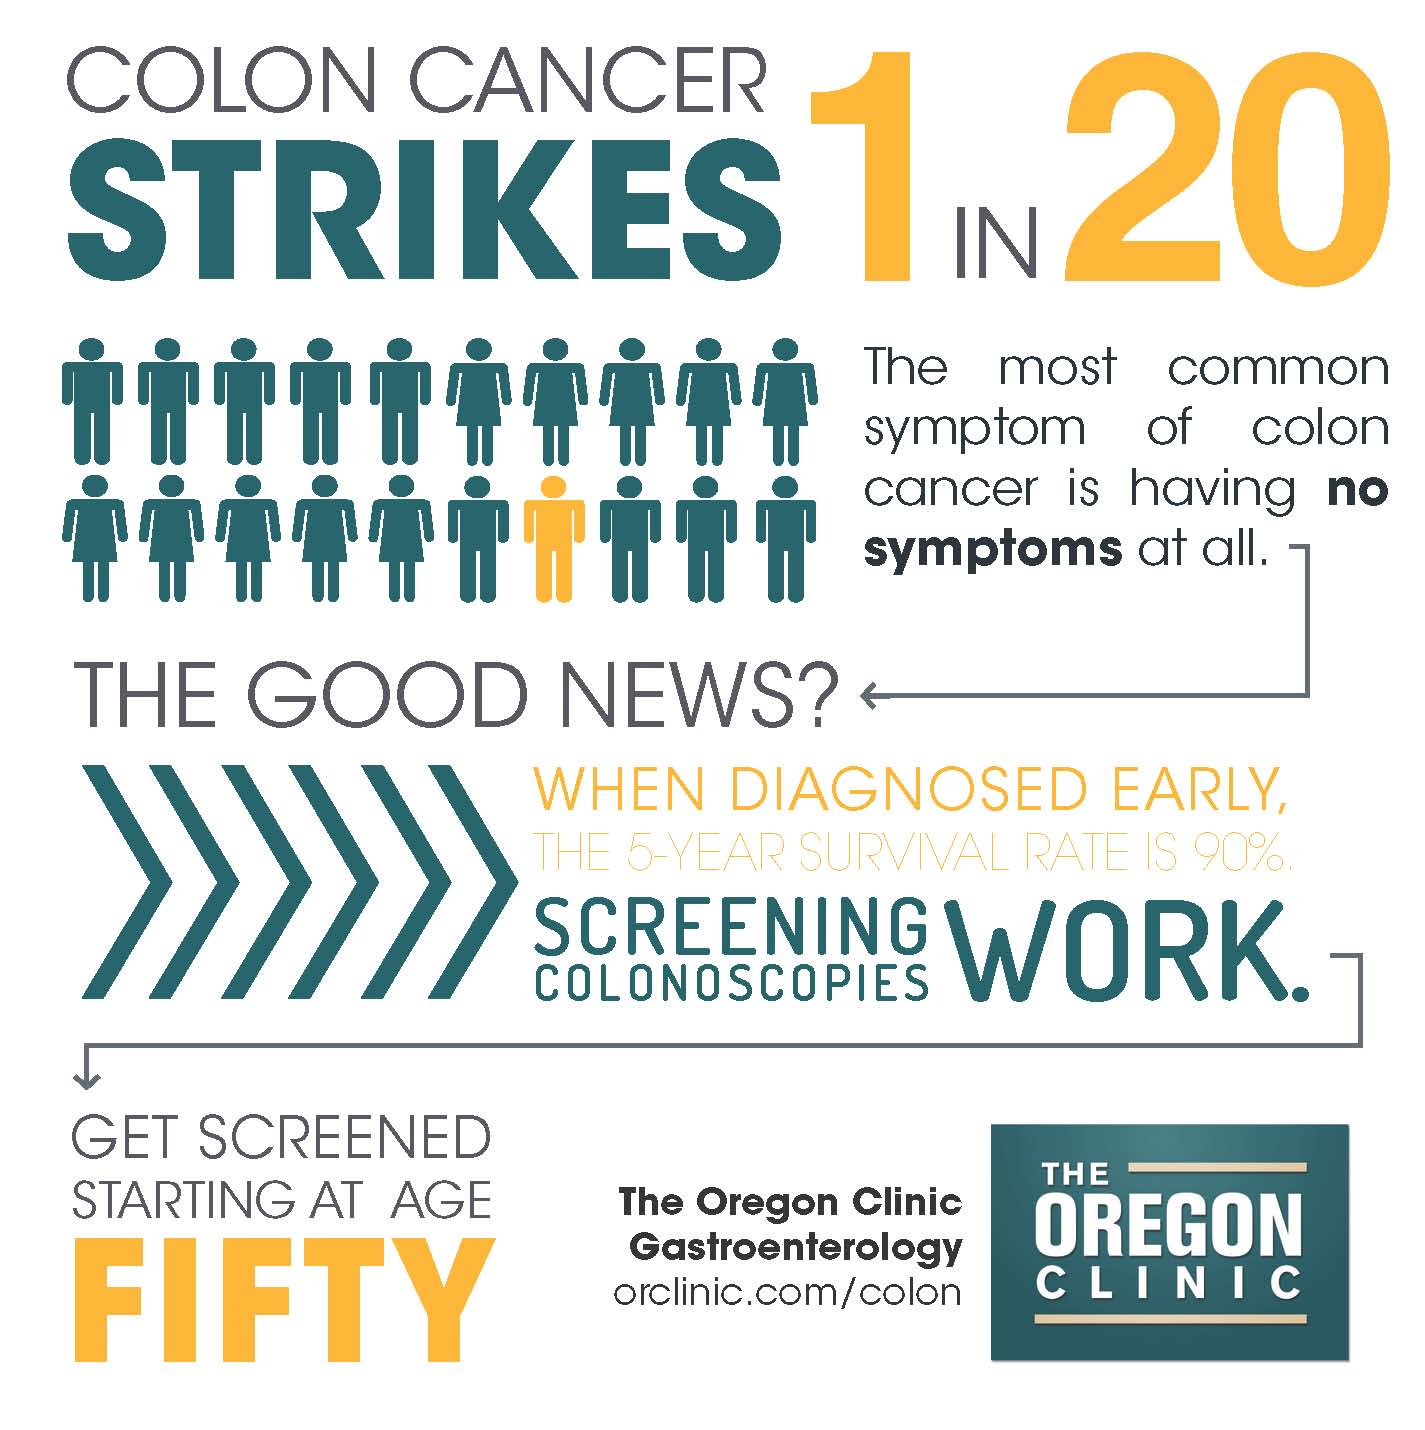 learn more about colonoscopy and colon cancer prevention - treat, Cephalic Vein